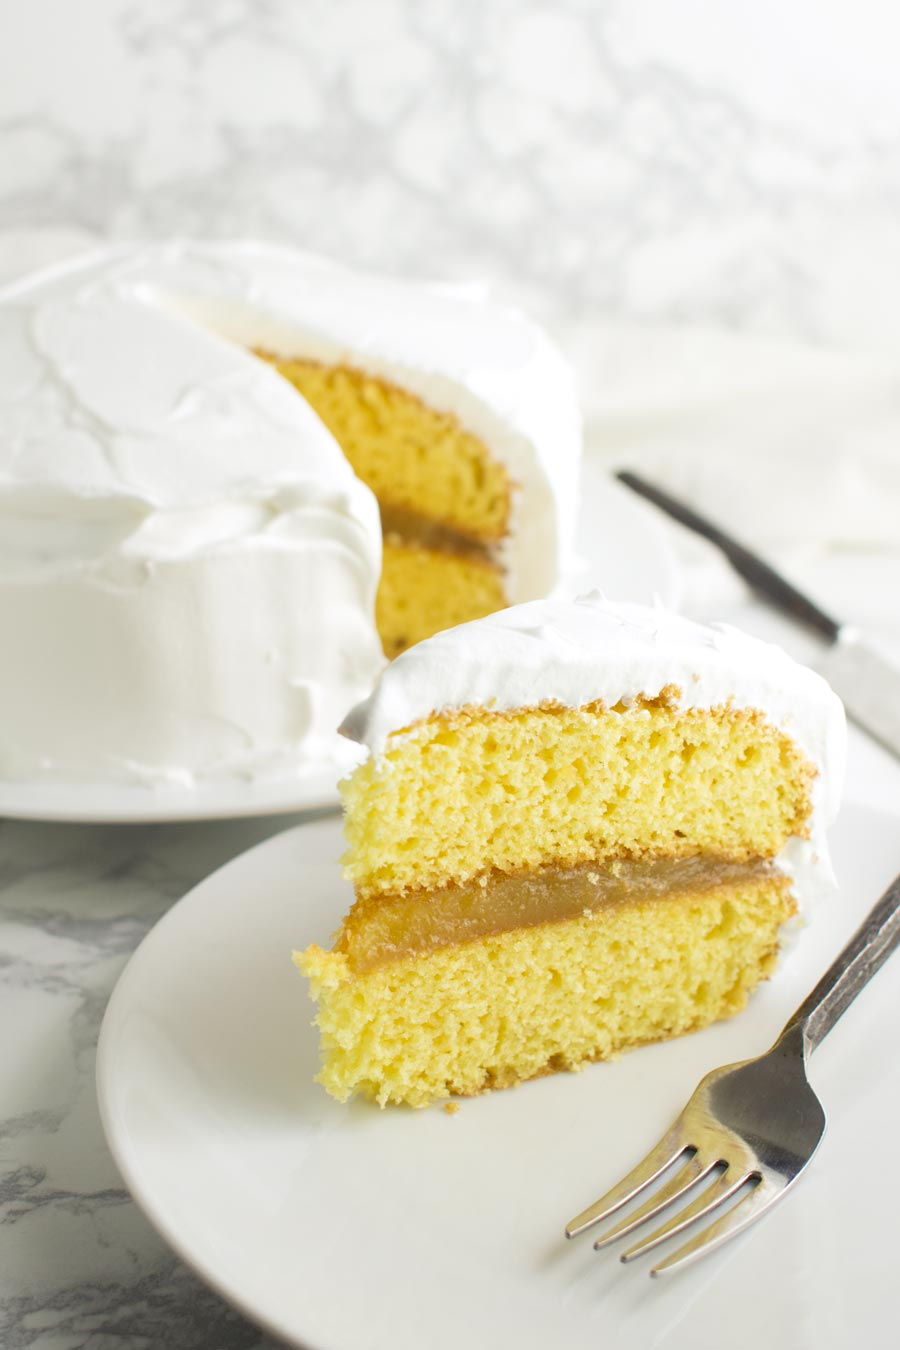 Lemon Curd Cake recipe from acleanplate.com #paleo #aip #glutenfree